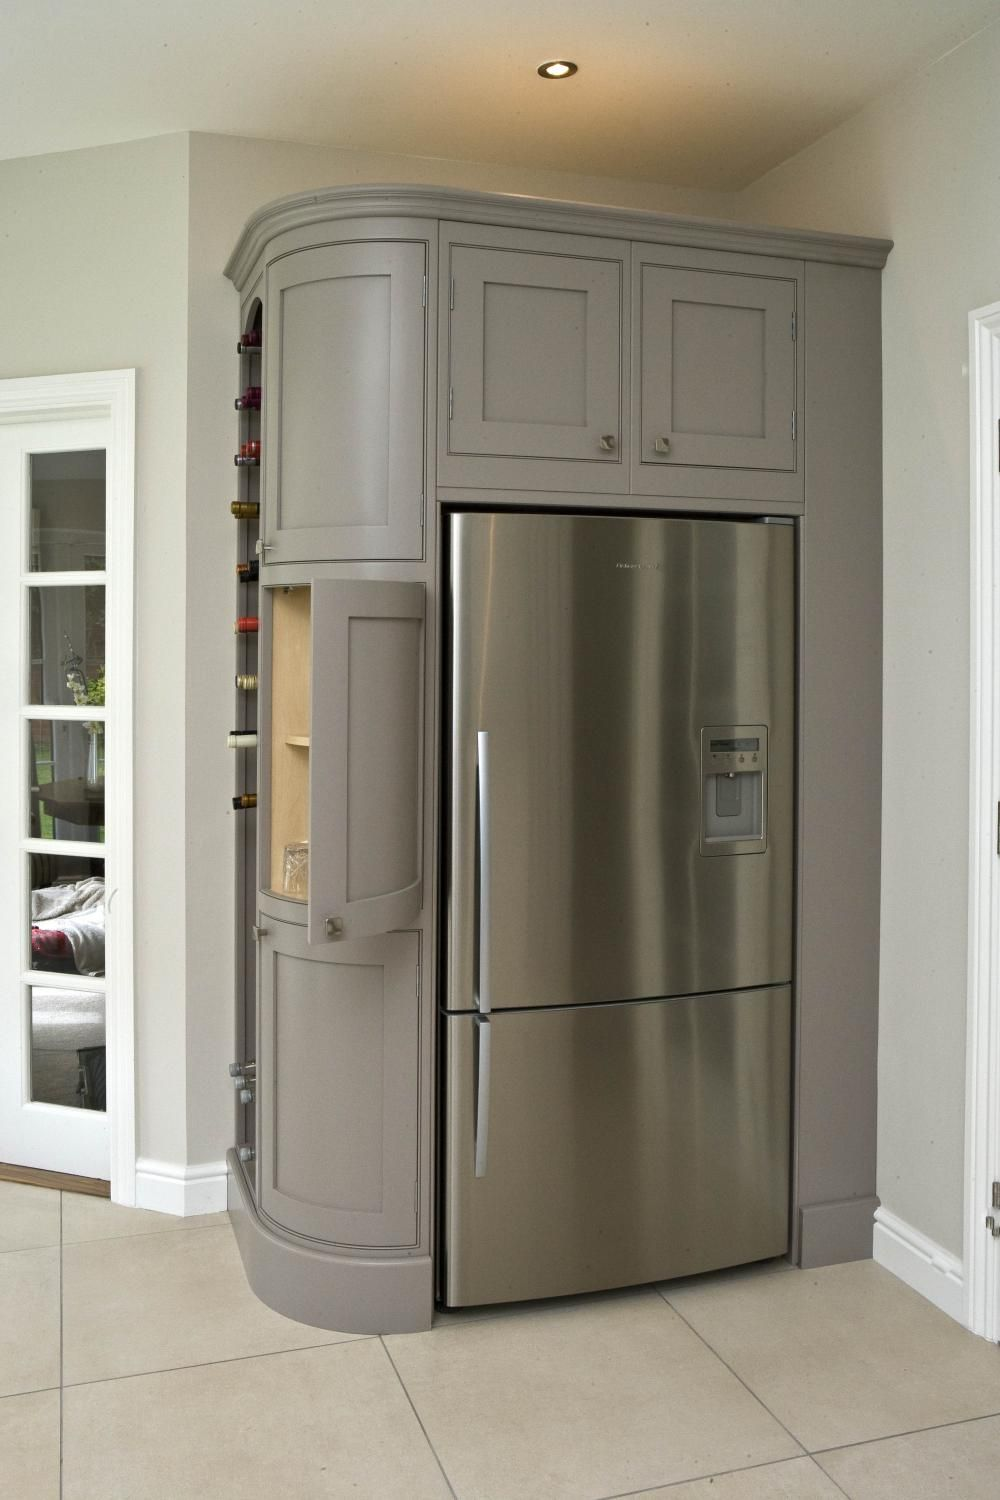 The 25 Best American Fridge Freezers Ideas On Pinterest